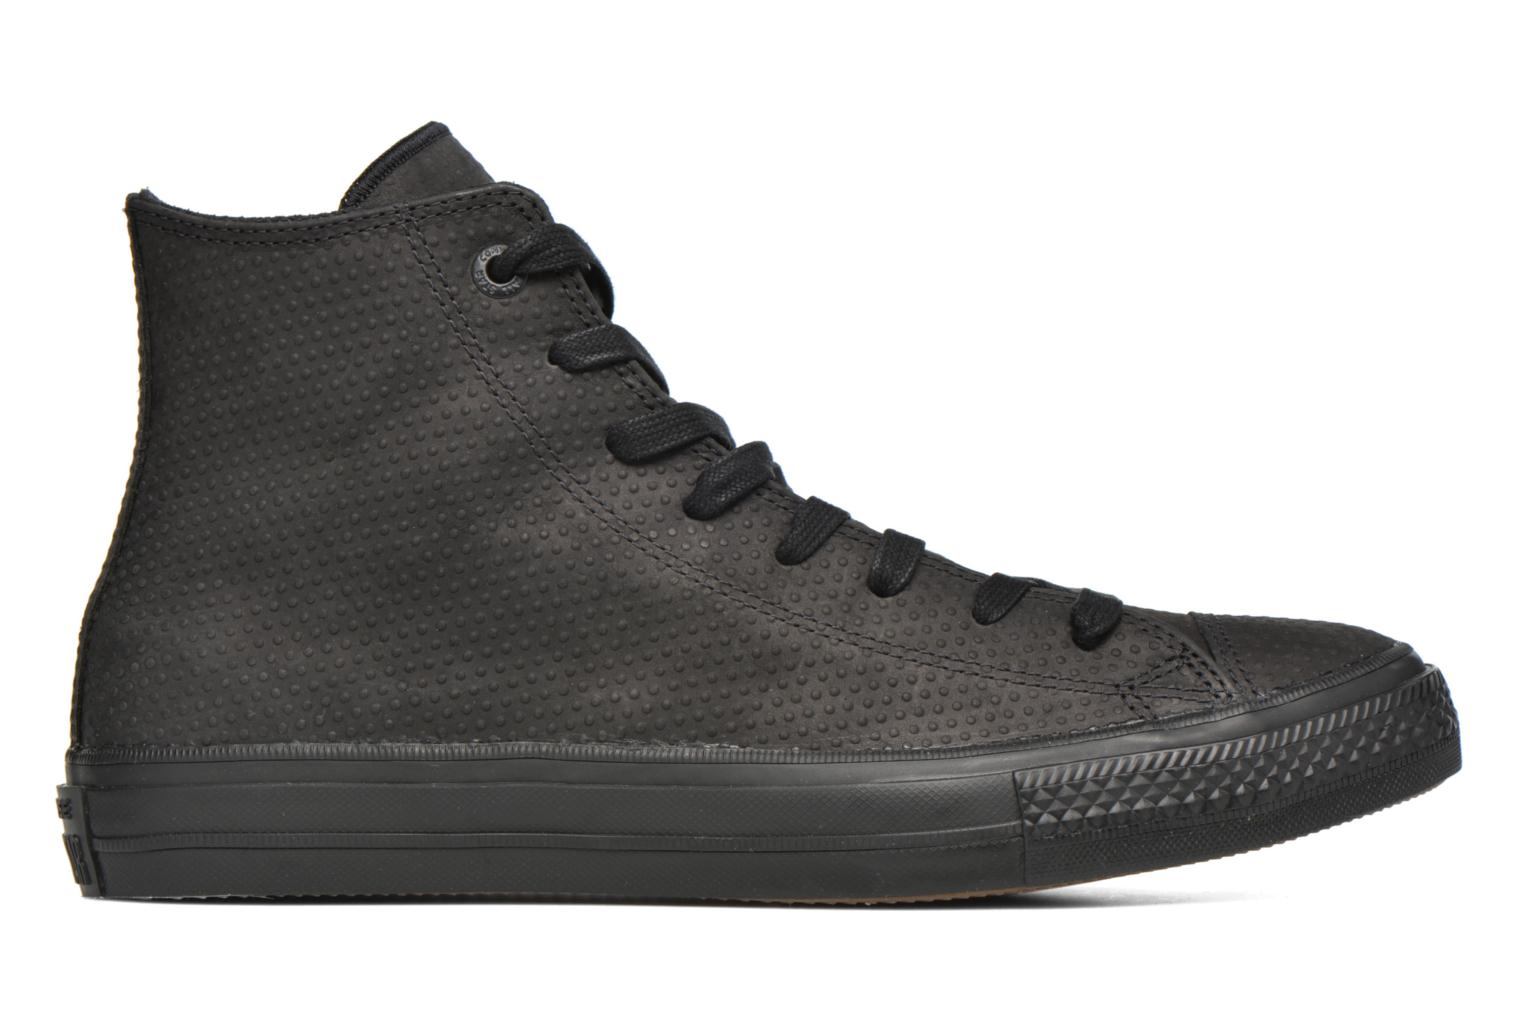 Chuck Taylor All Star II Hi Lux Leather